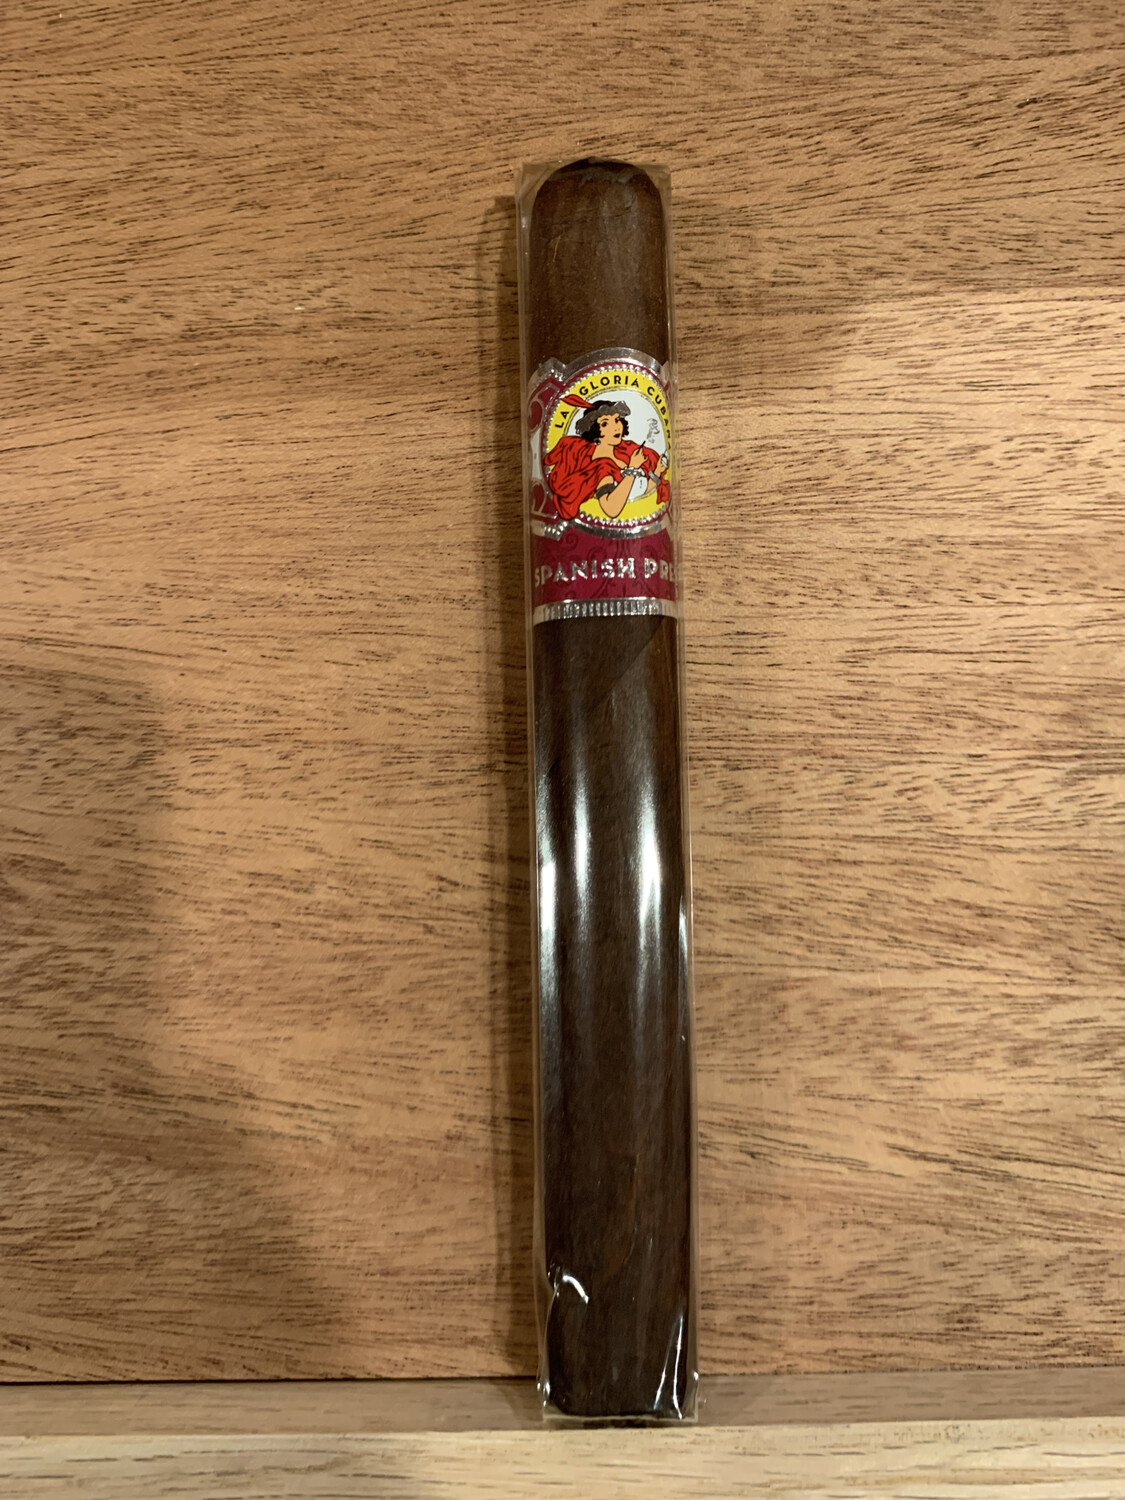 La Gloria Cubana Spanish Press Toro